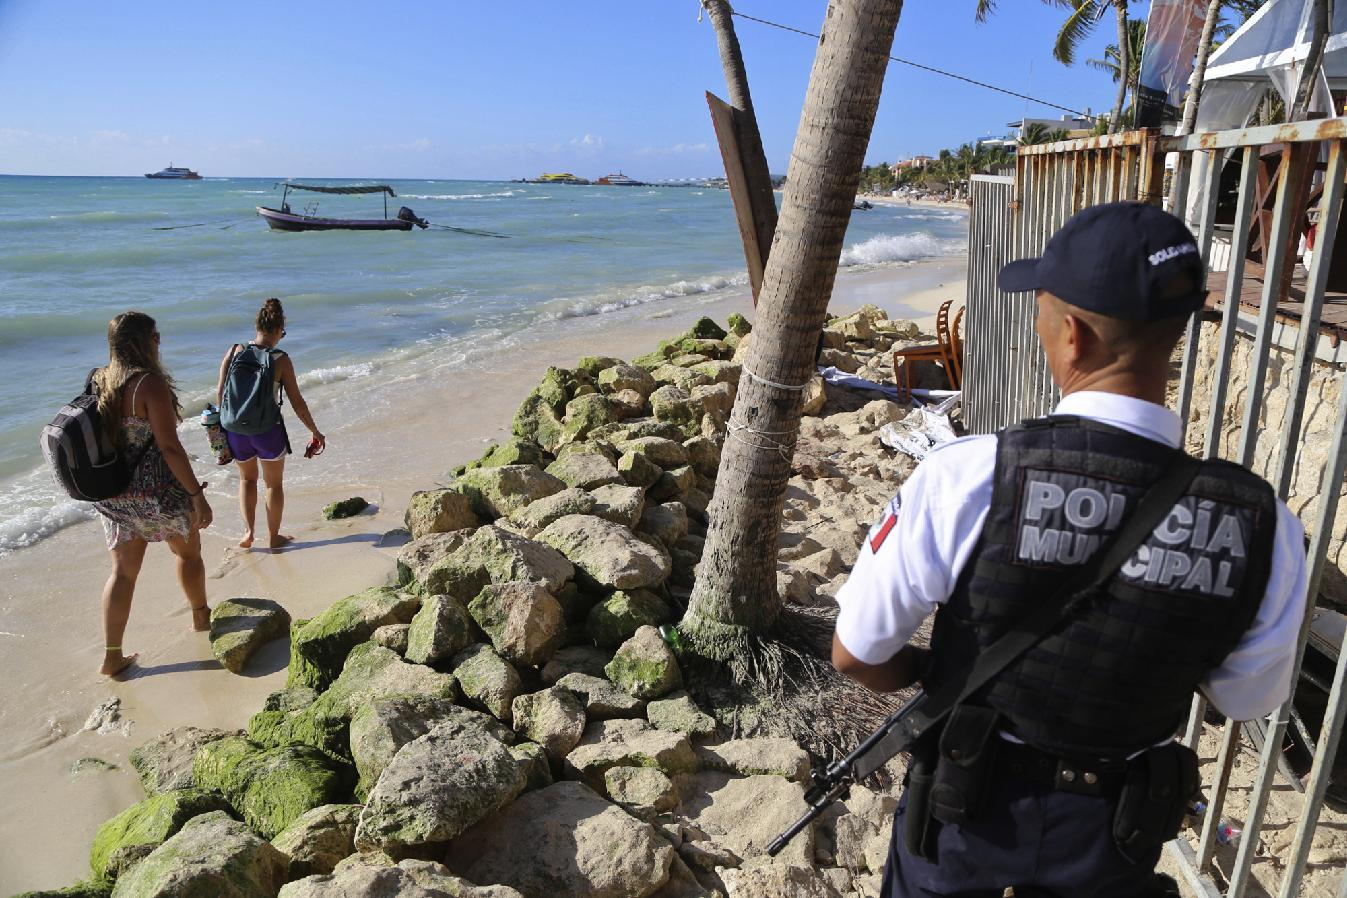 Police: 5 killed in shooting at nightclub at Mexican resort